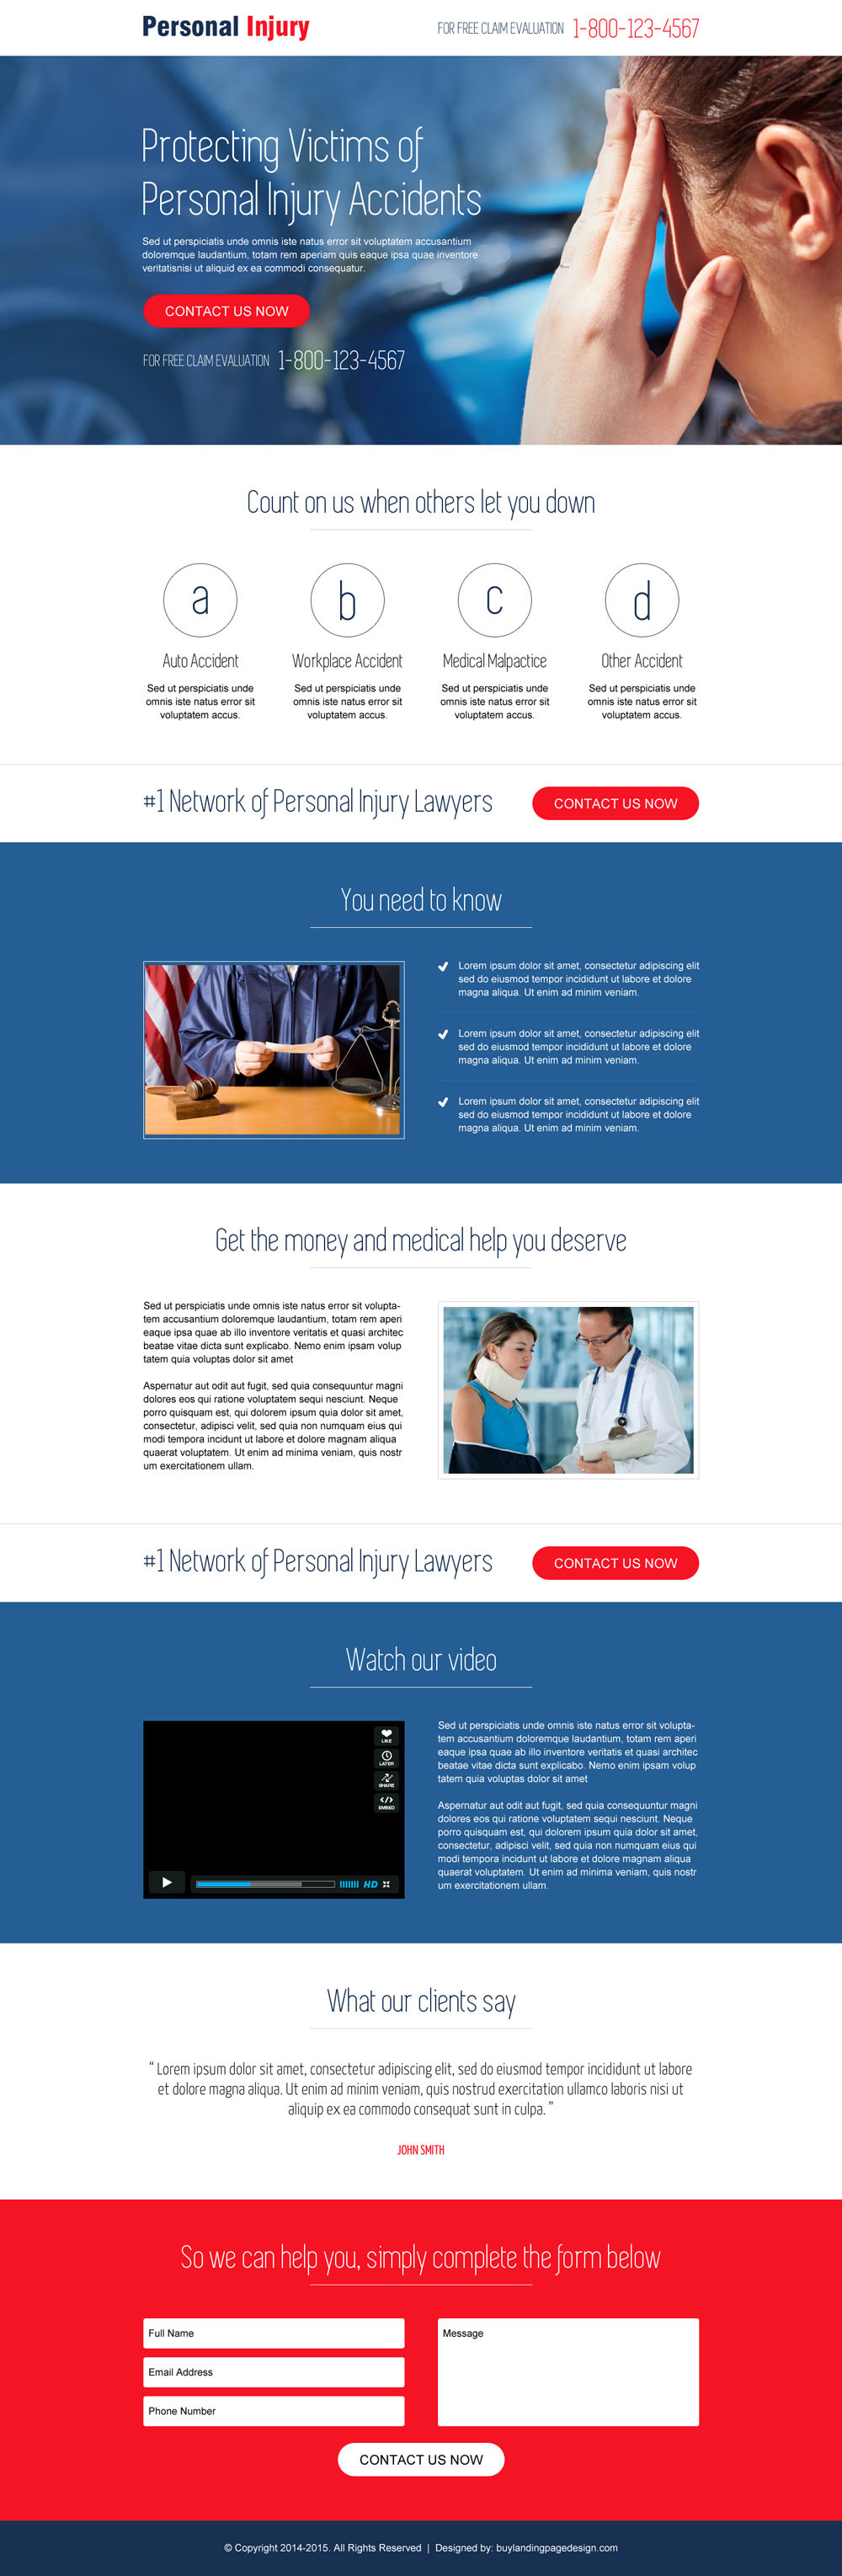 Personal Injury Landing Pages For Capturing Leads - Personal landing page template